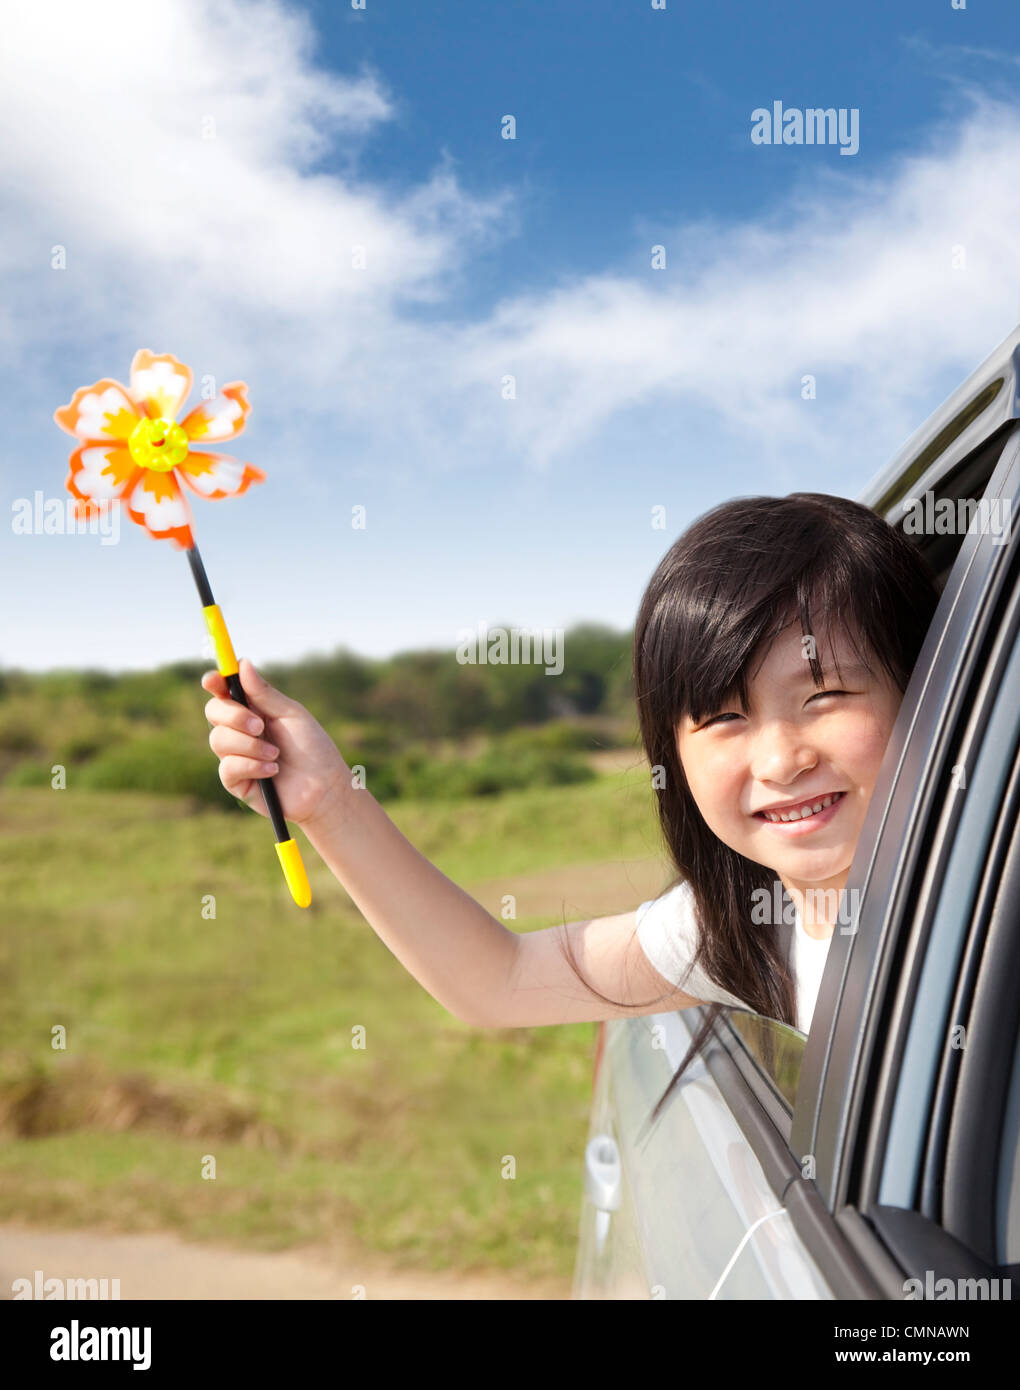 Happy little girl holding moulin dans la voiture Photo Stock